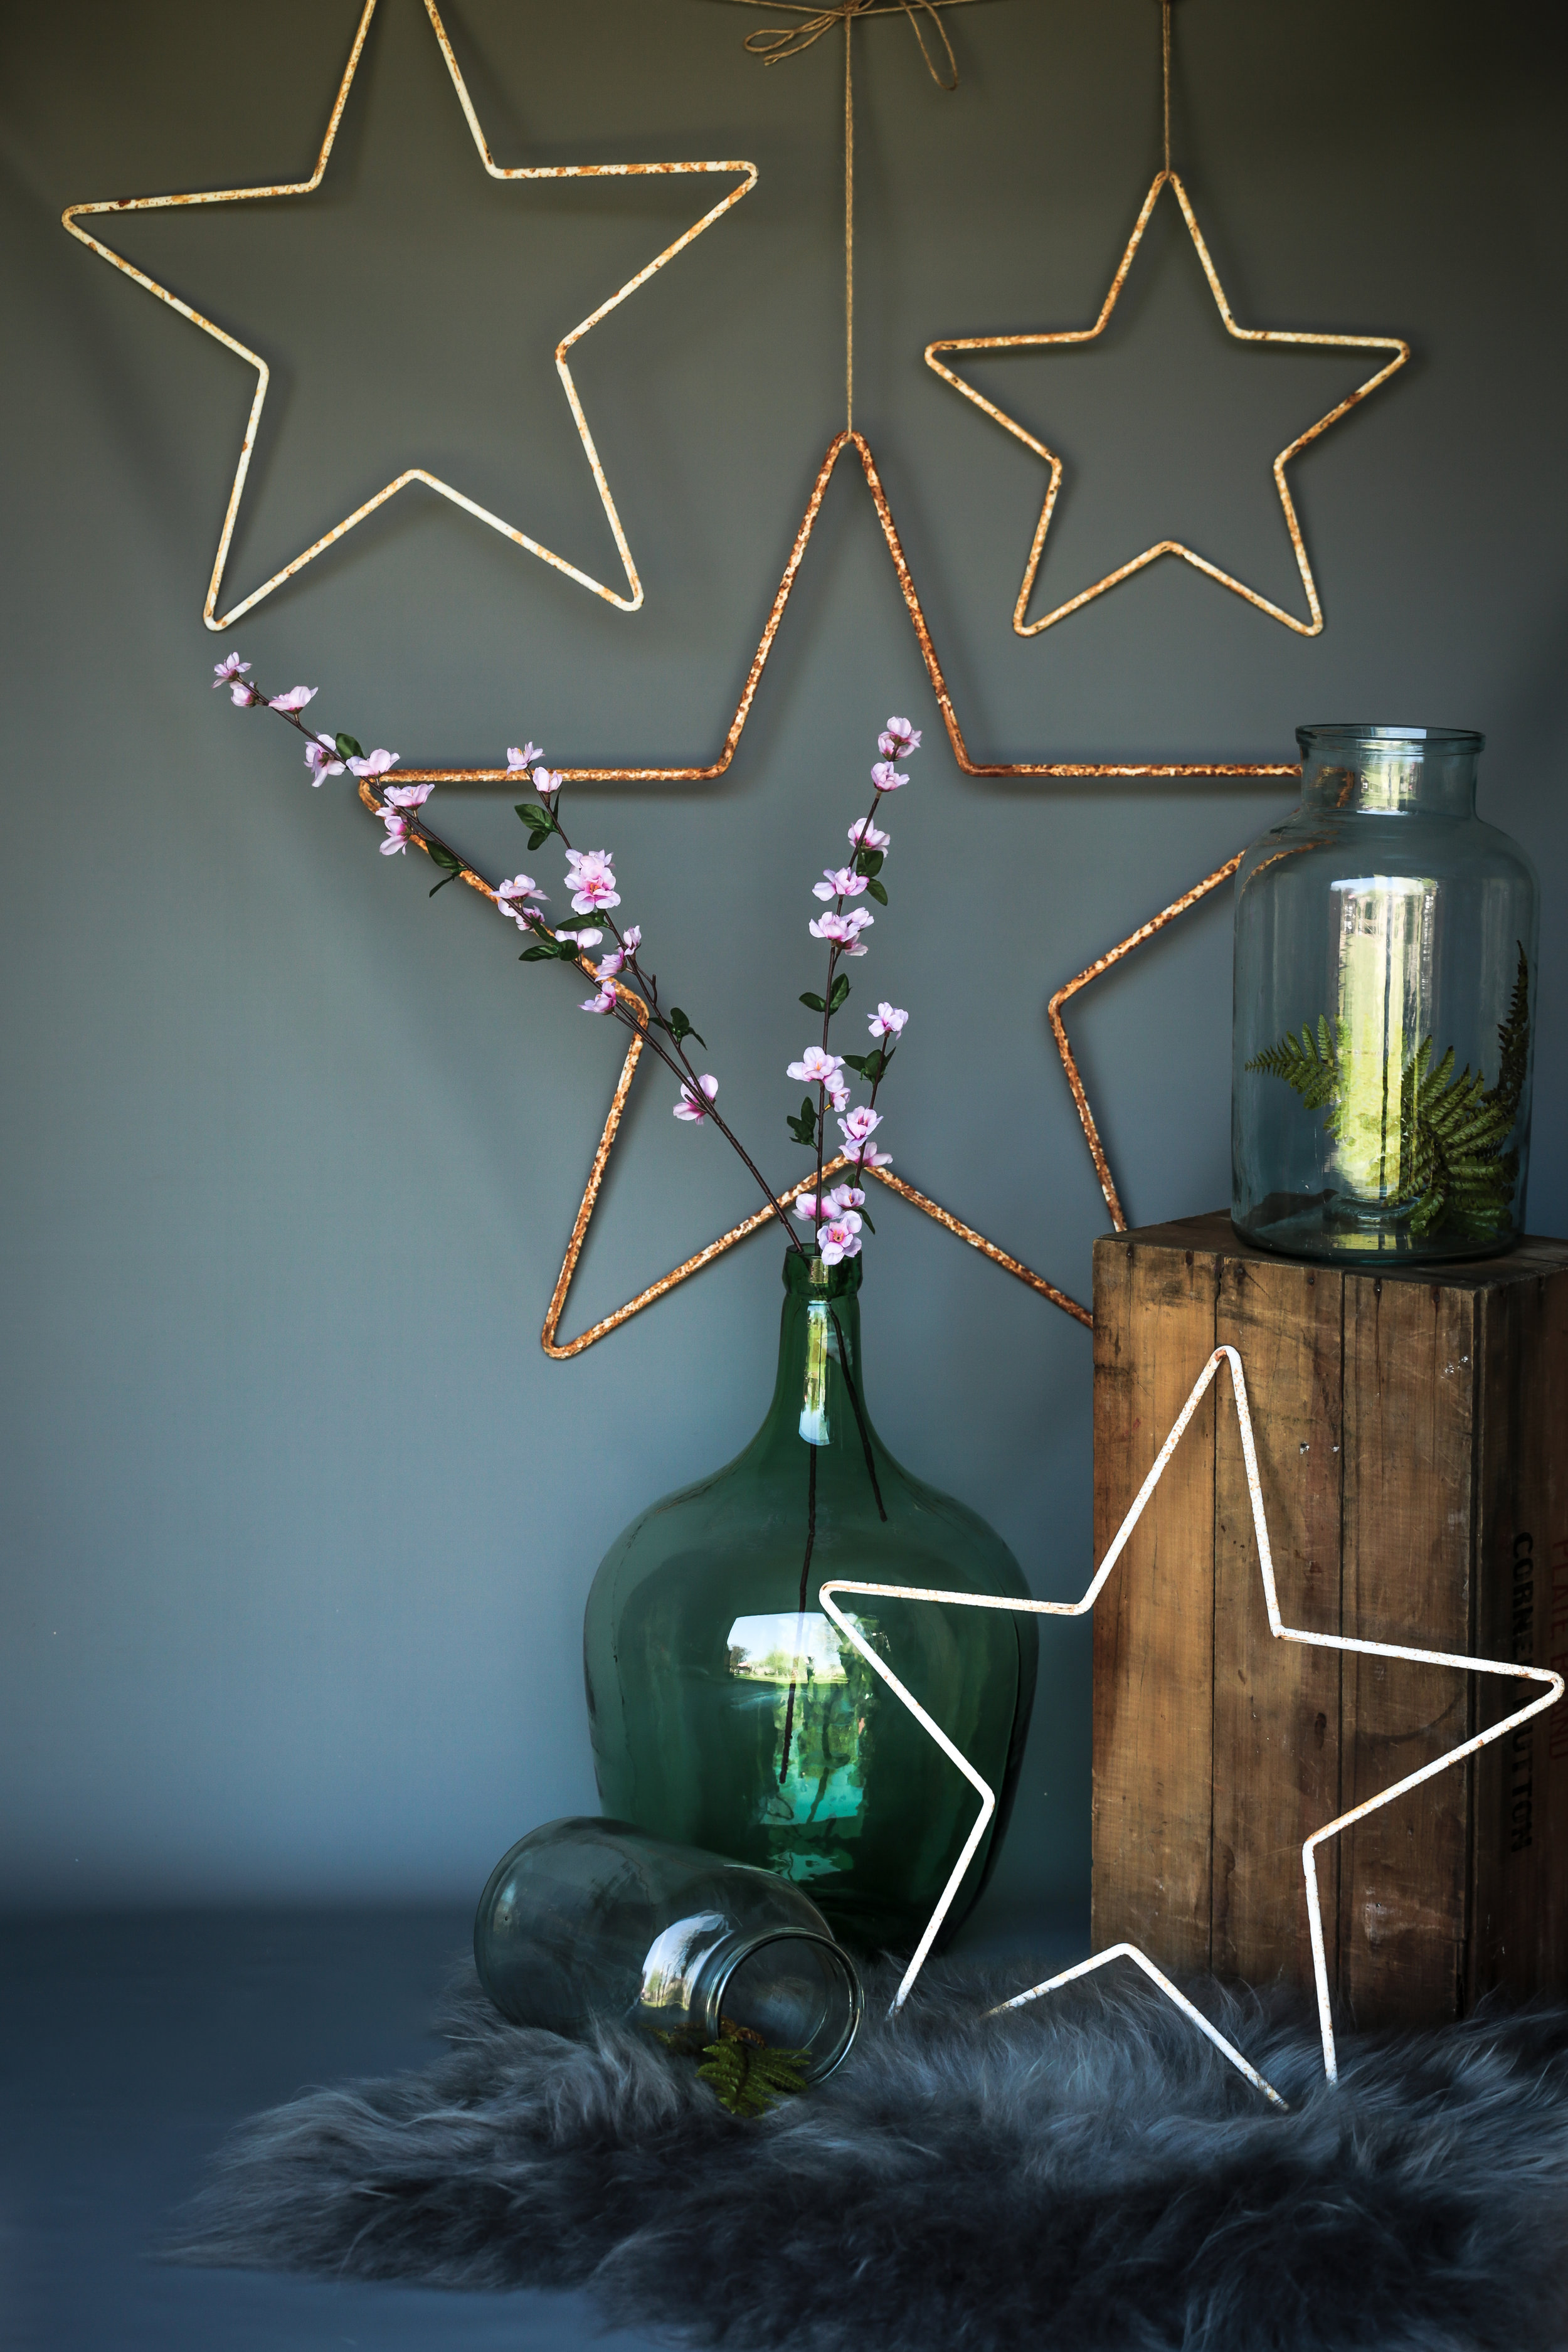 Anna's Attic glass and stars – Available on Anna's website  here  (Credit Clicky McGhee's)